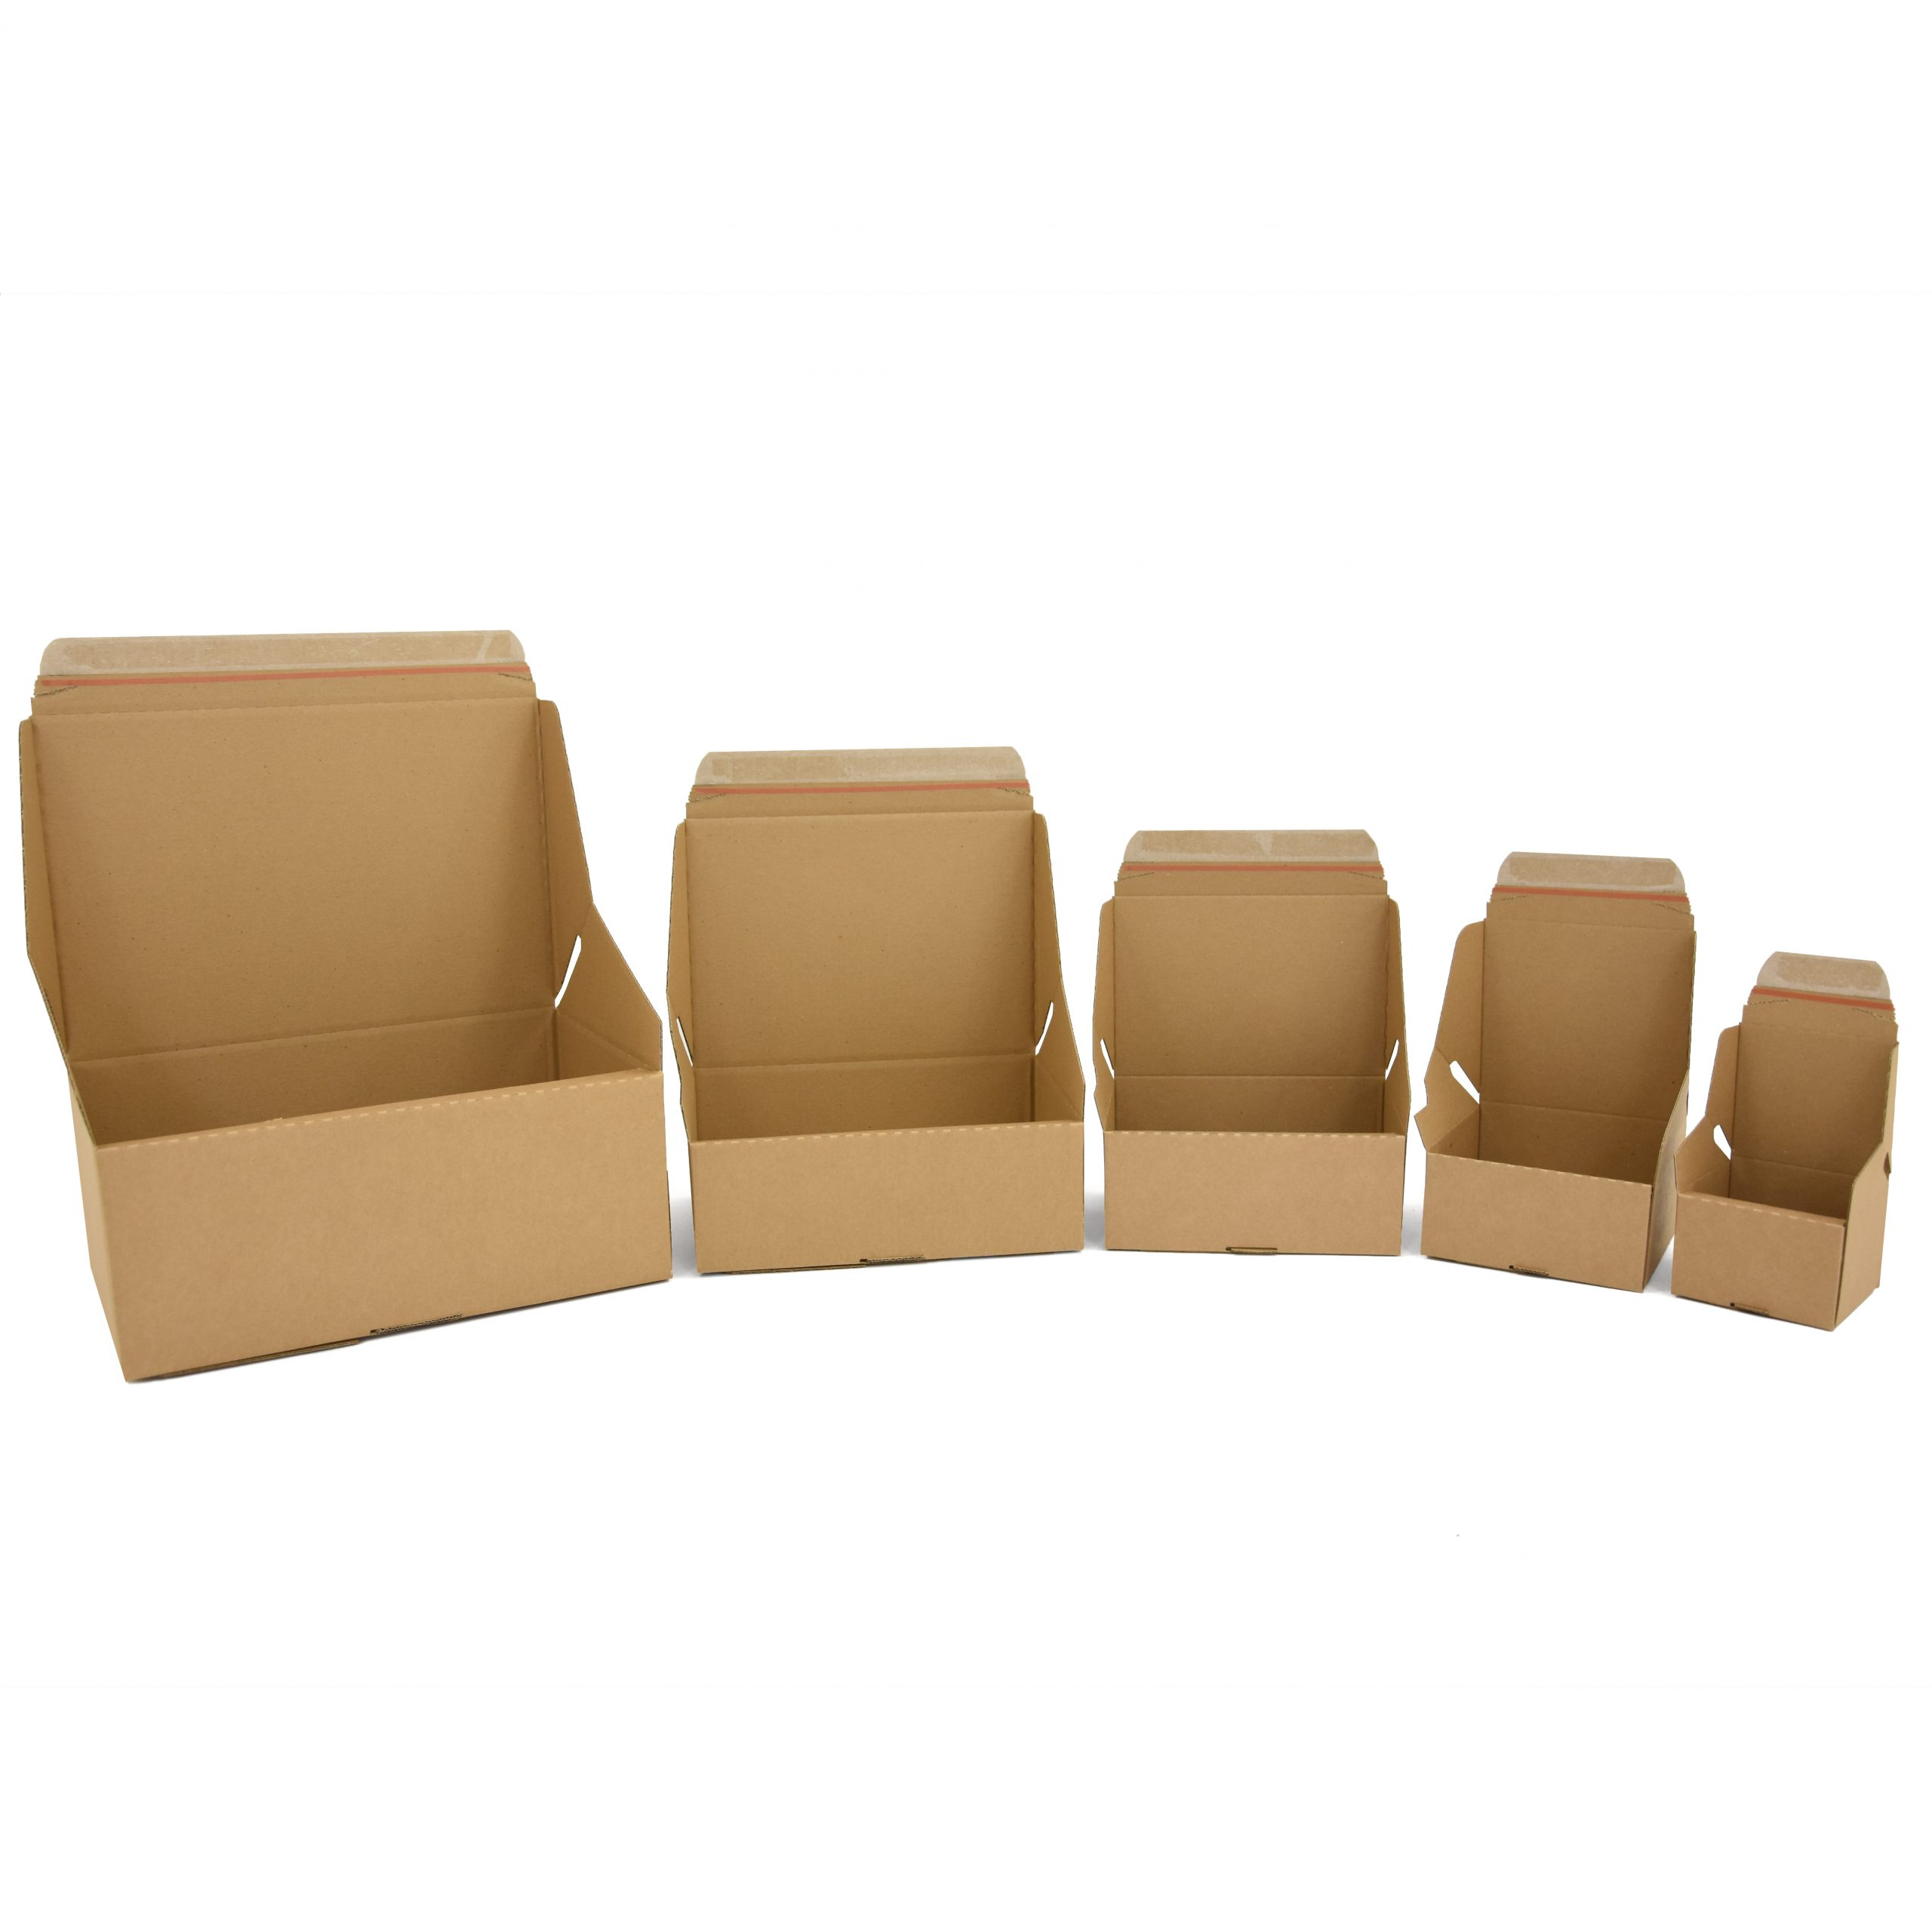 Packaging company, Kite Packaging, have expanded their ecommerce offering by adding ecommerce boxes to their range.